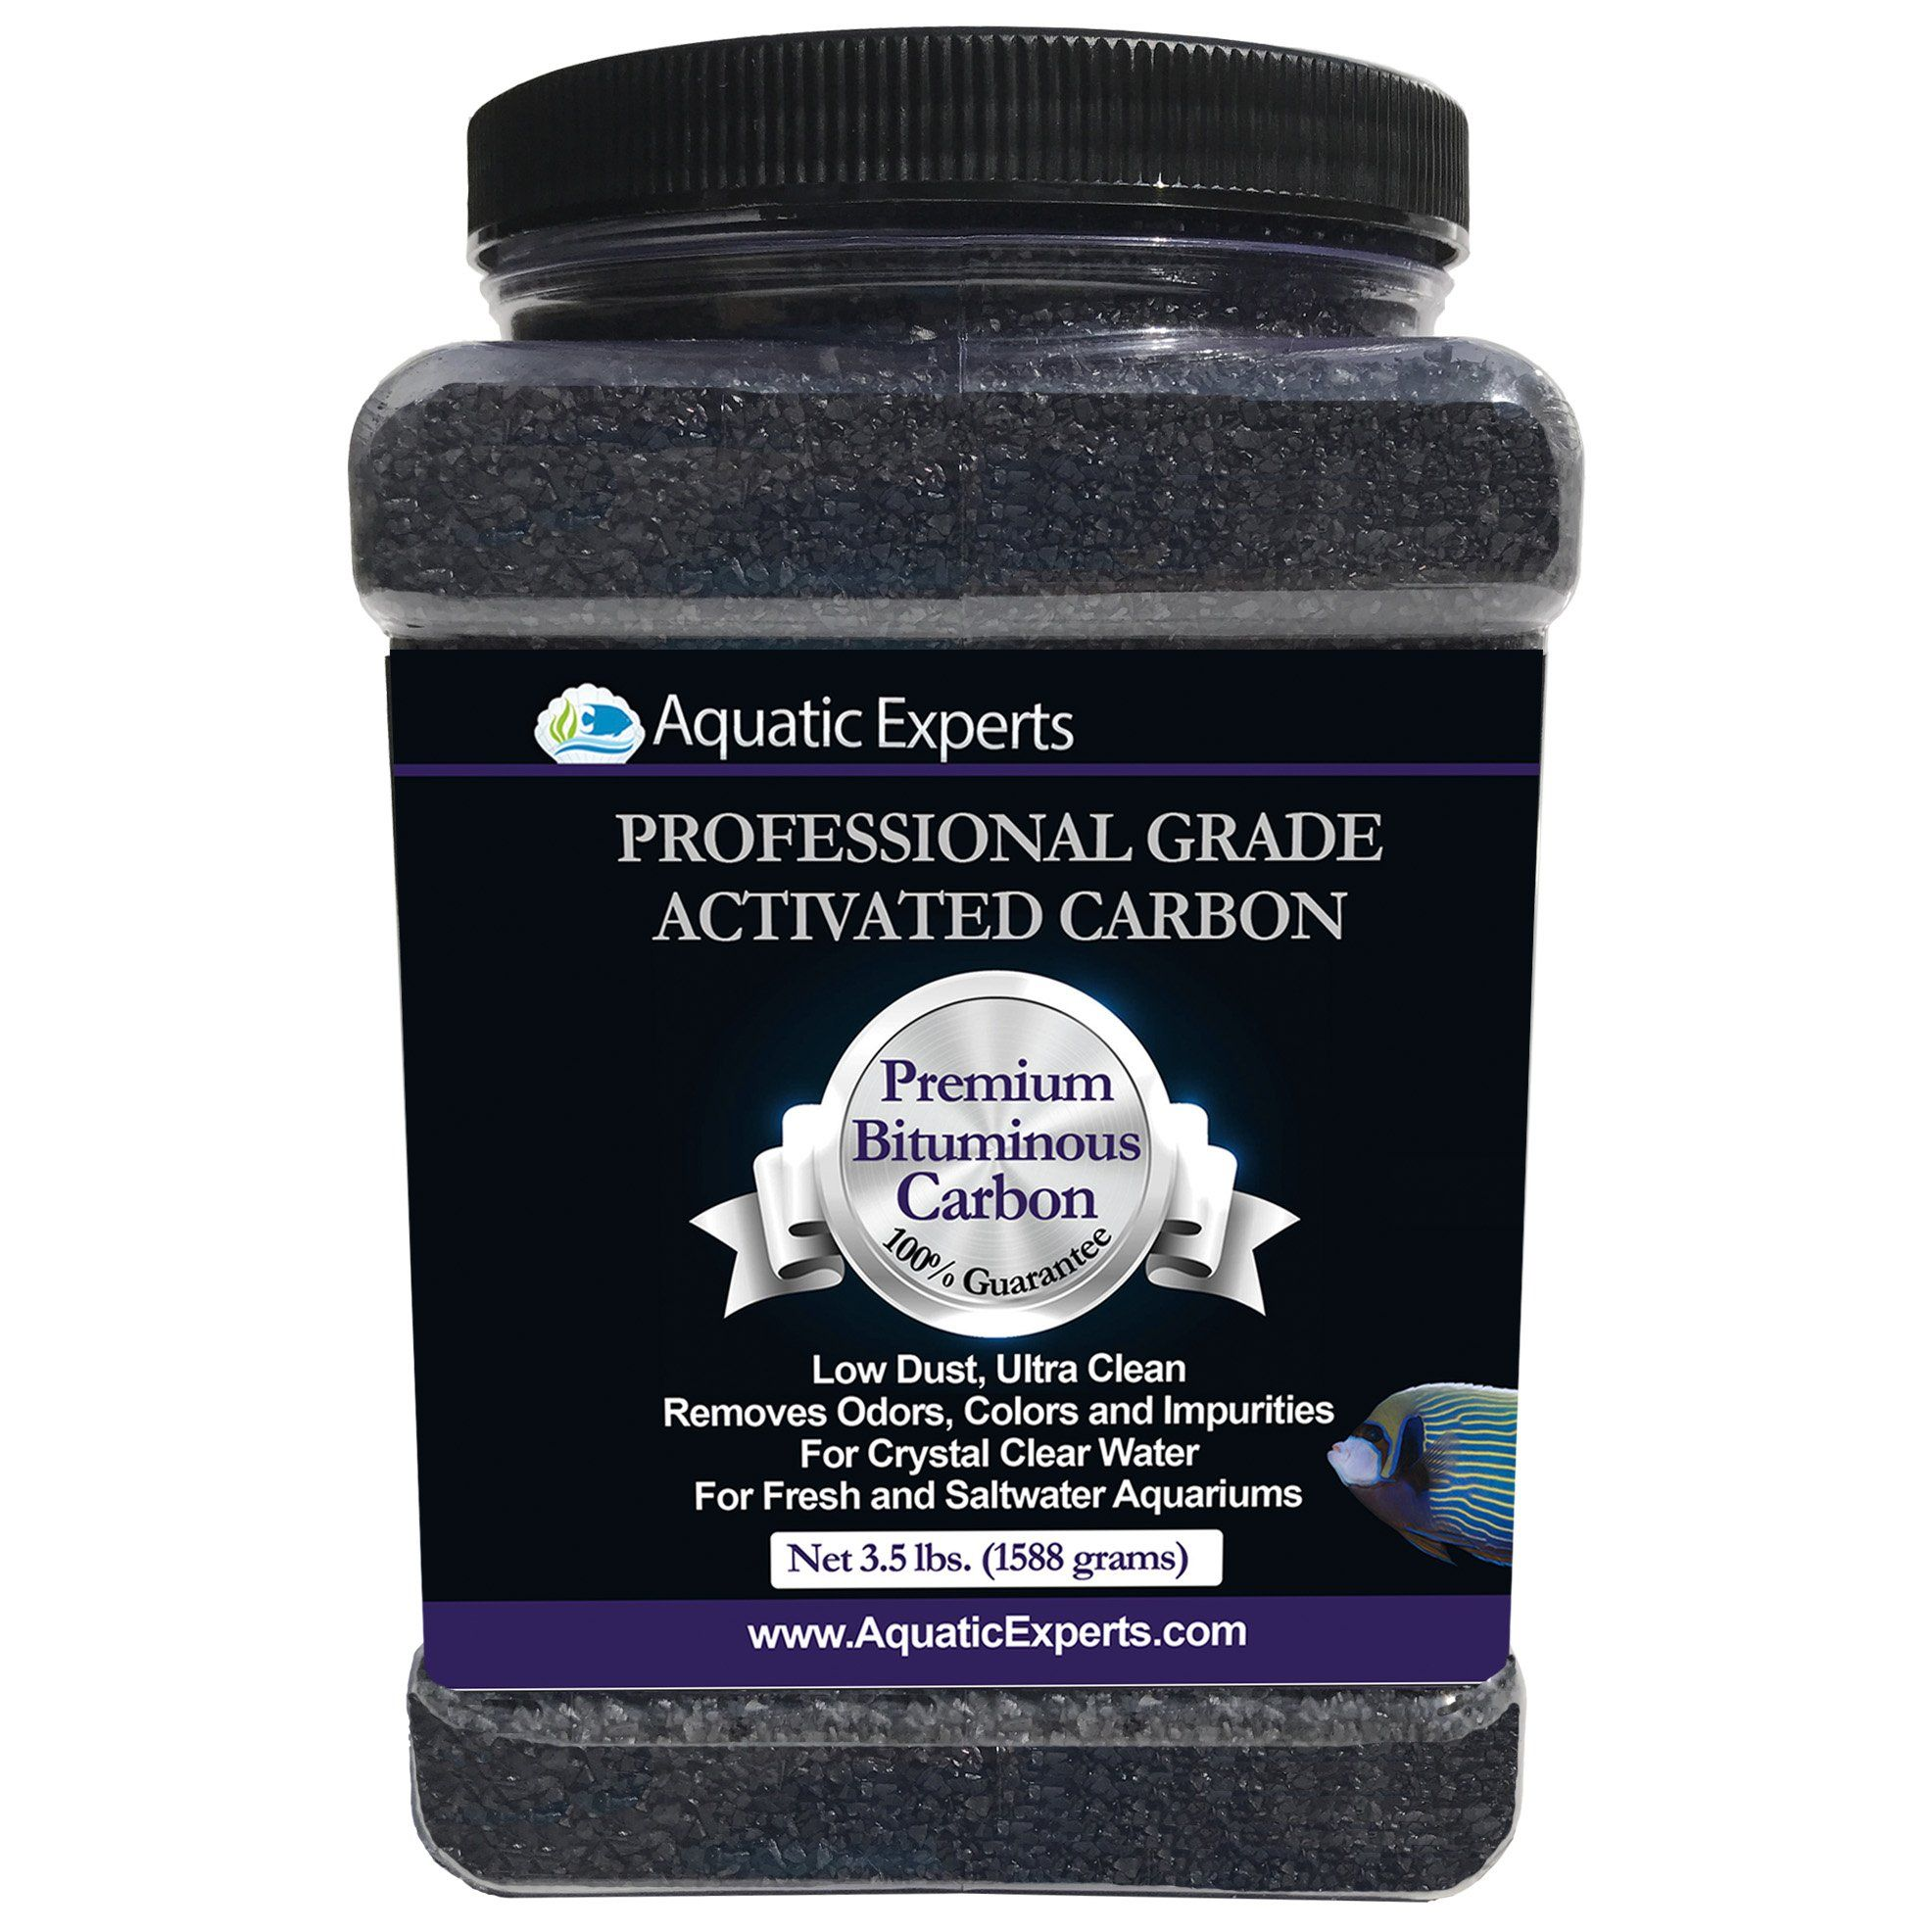 Premium Activated Carbon Aquarium Filter Charcoal Media